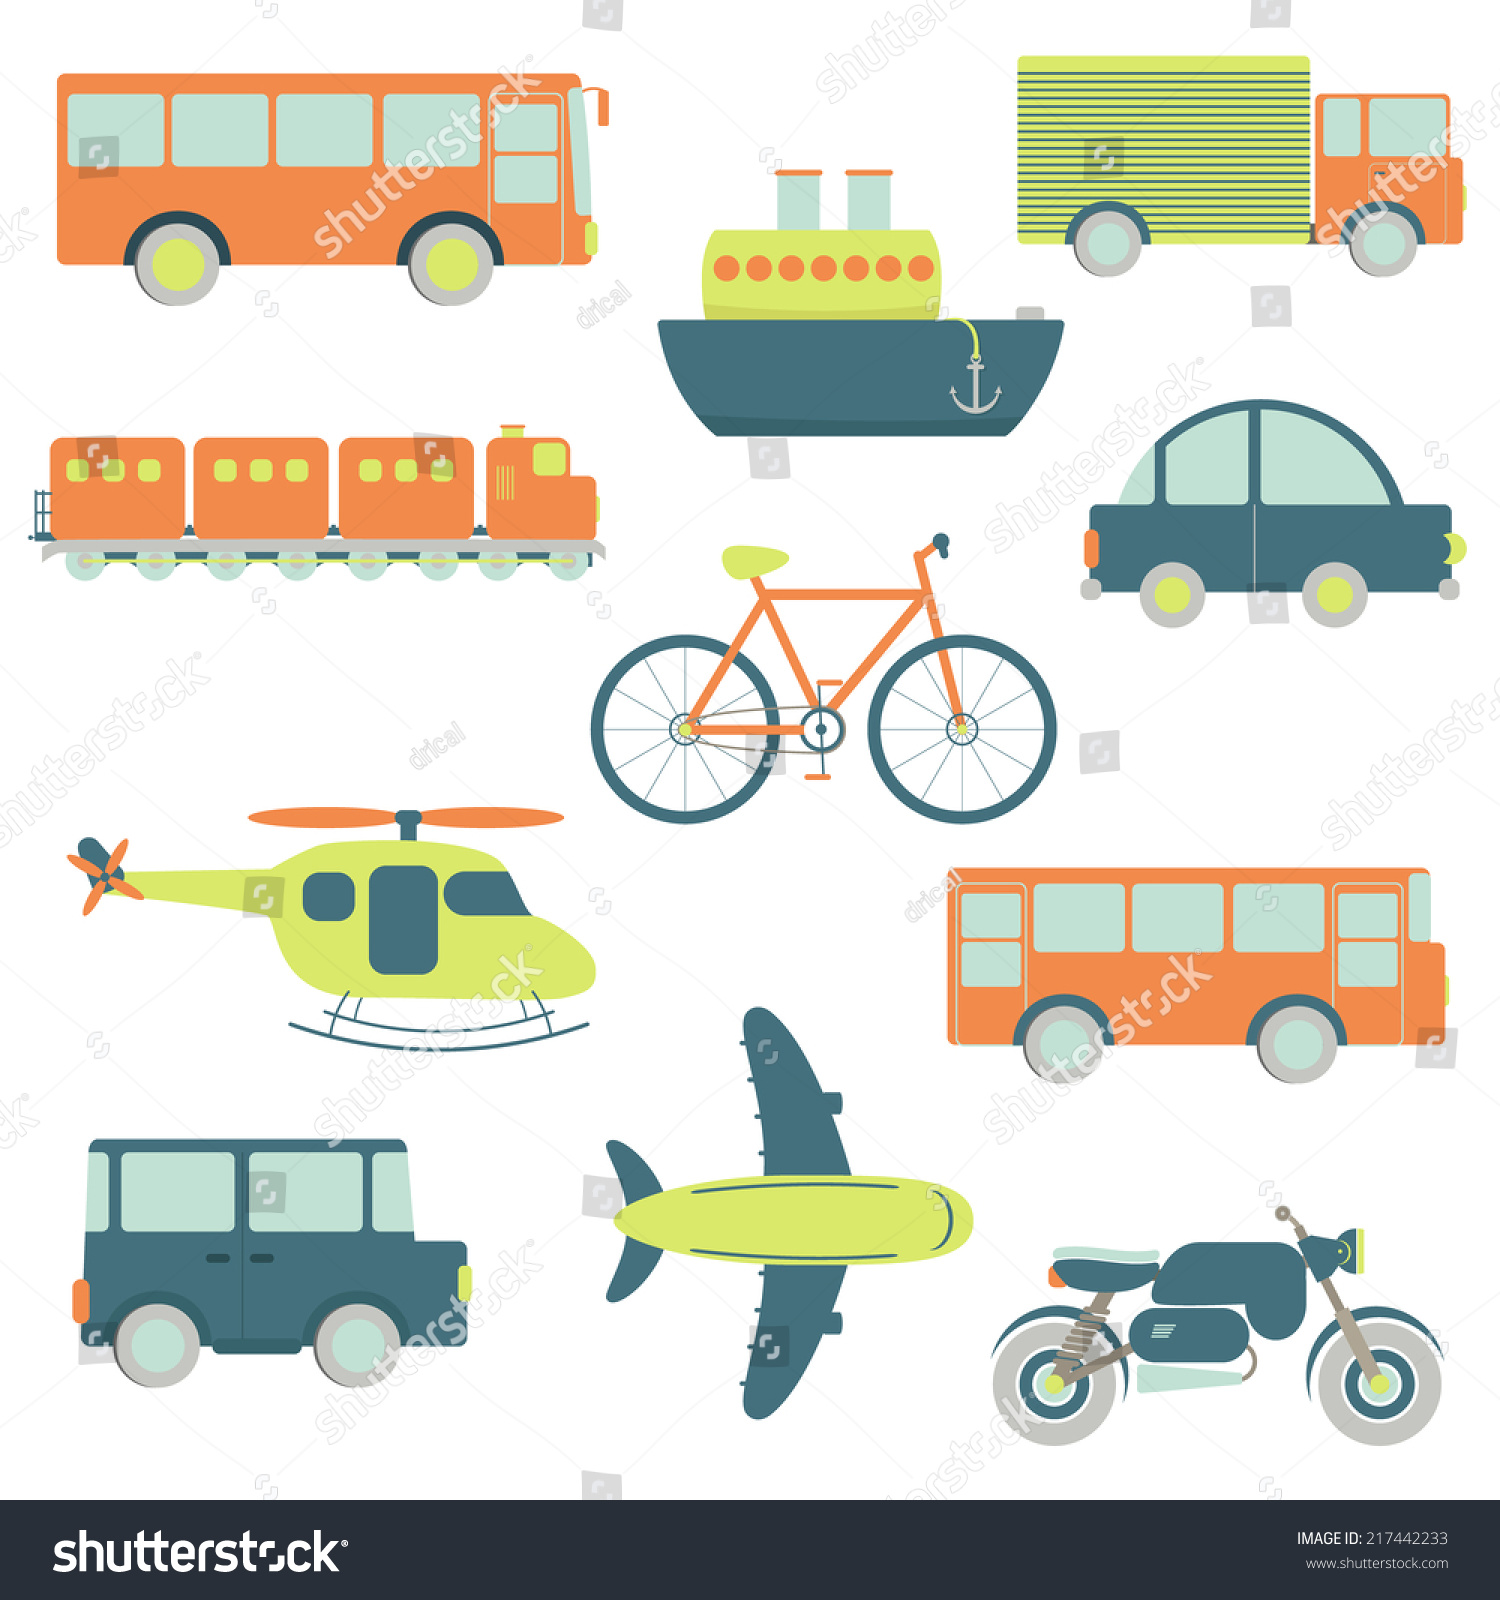 Transportation Facilities White Background Ford Cargo Van Clip Art In A Car Bus Travel